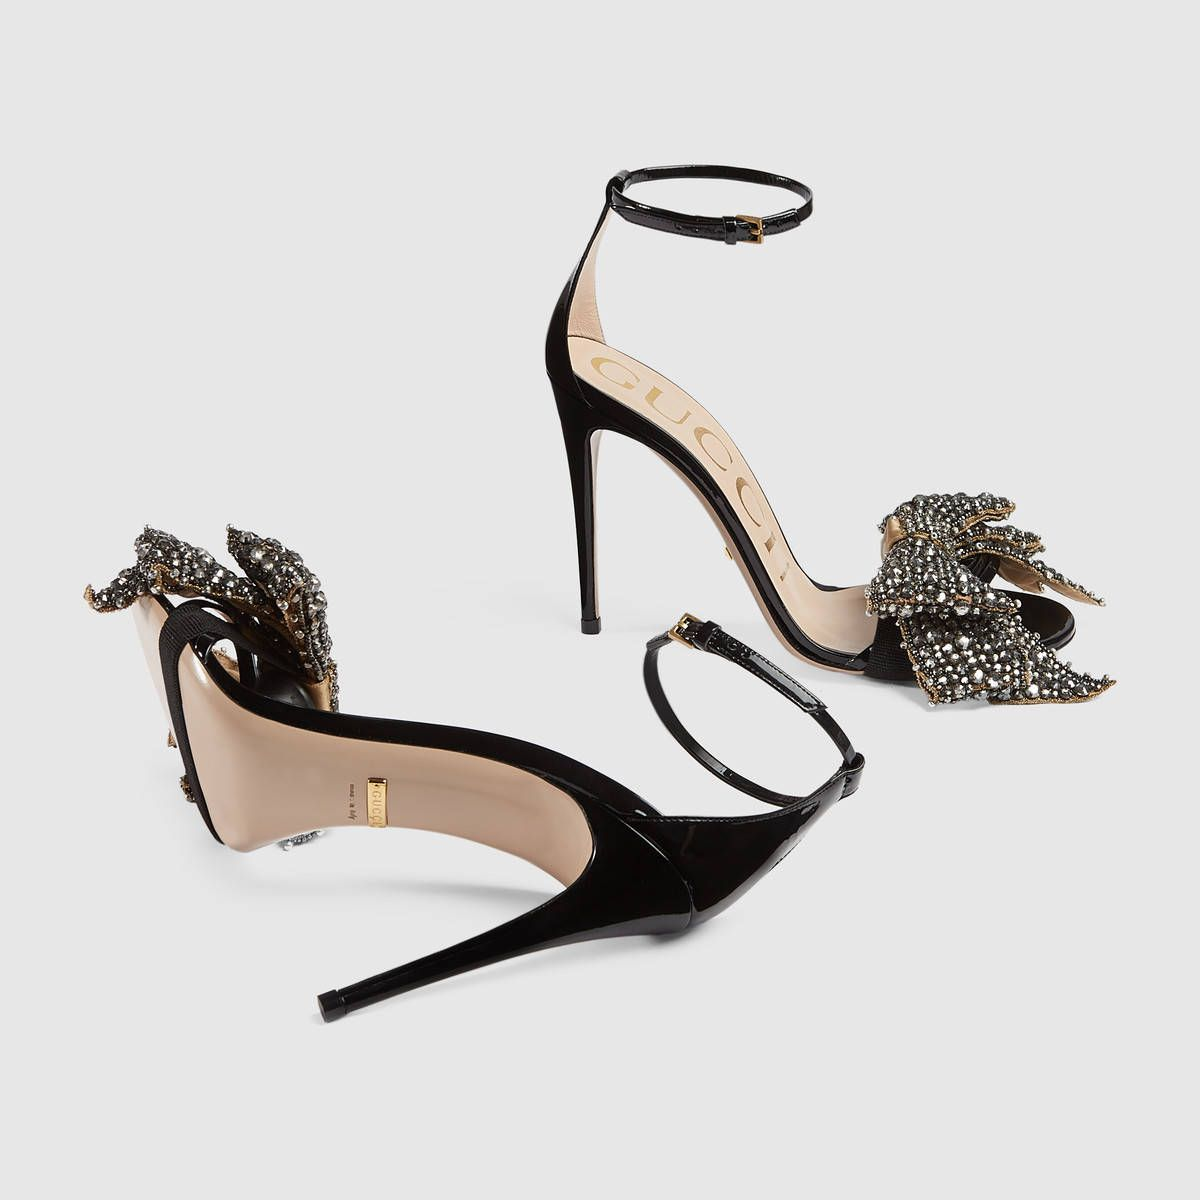 Gucci Patent leather sandal with